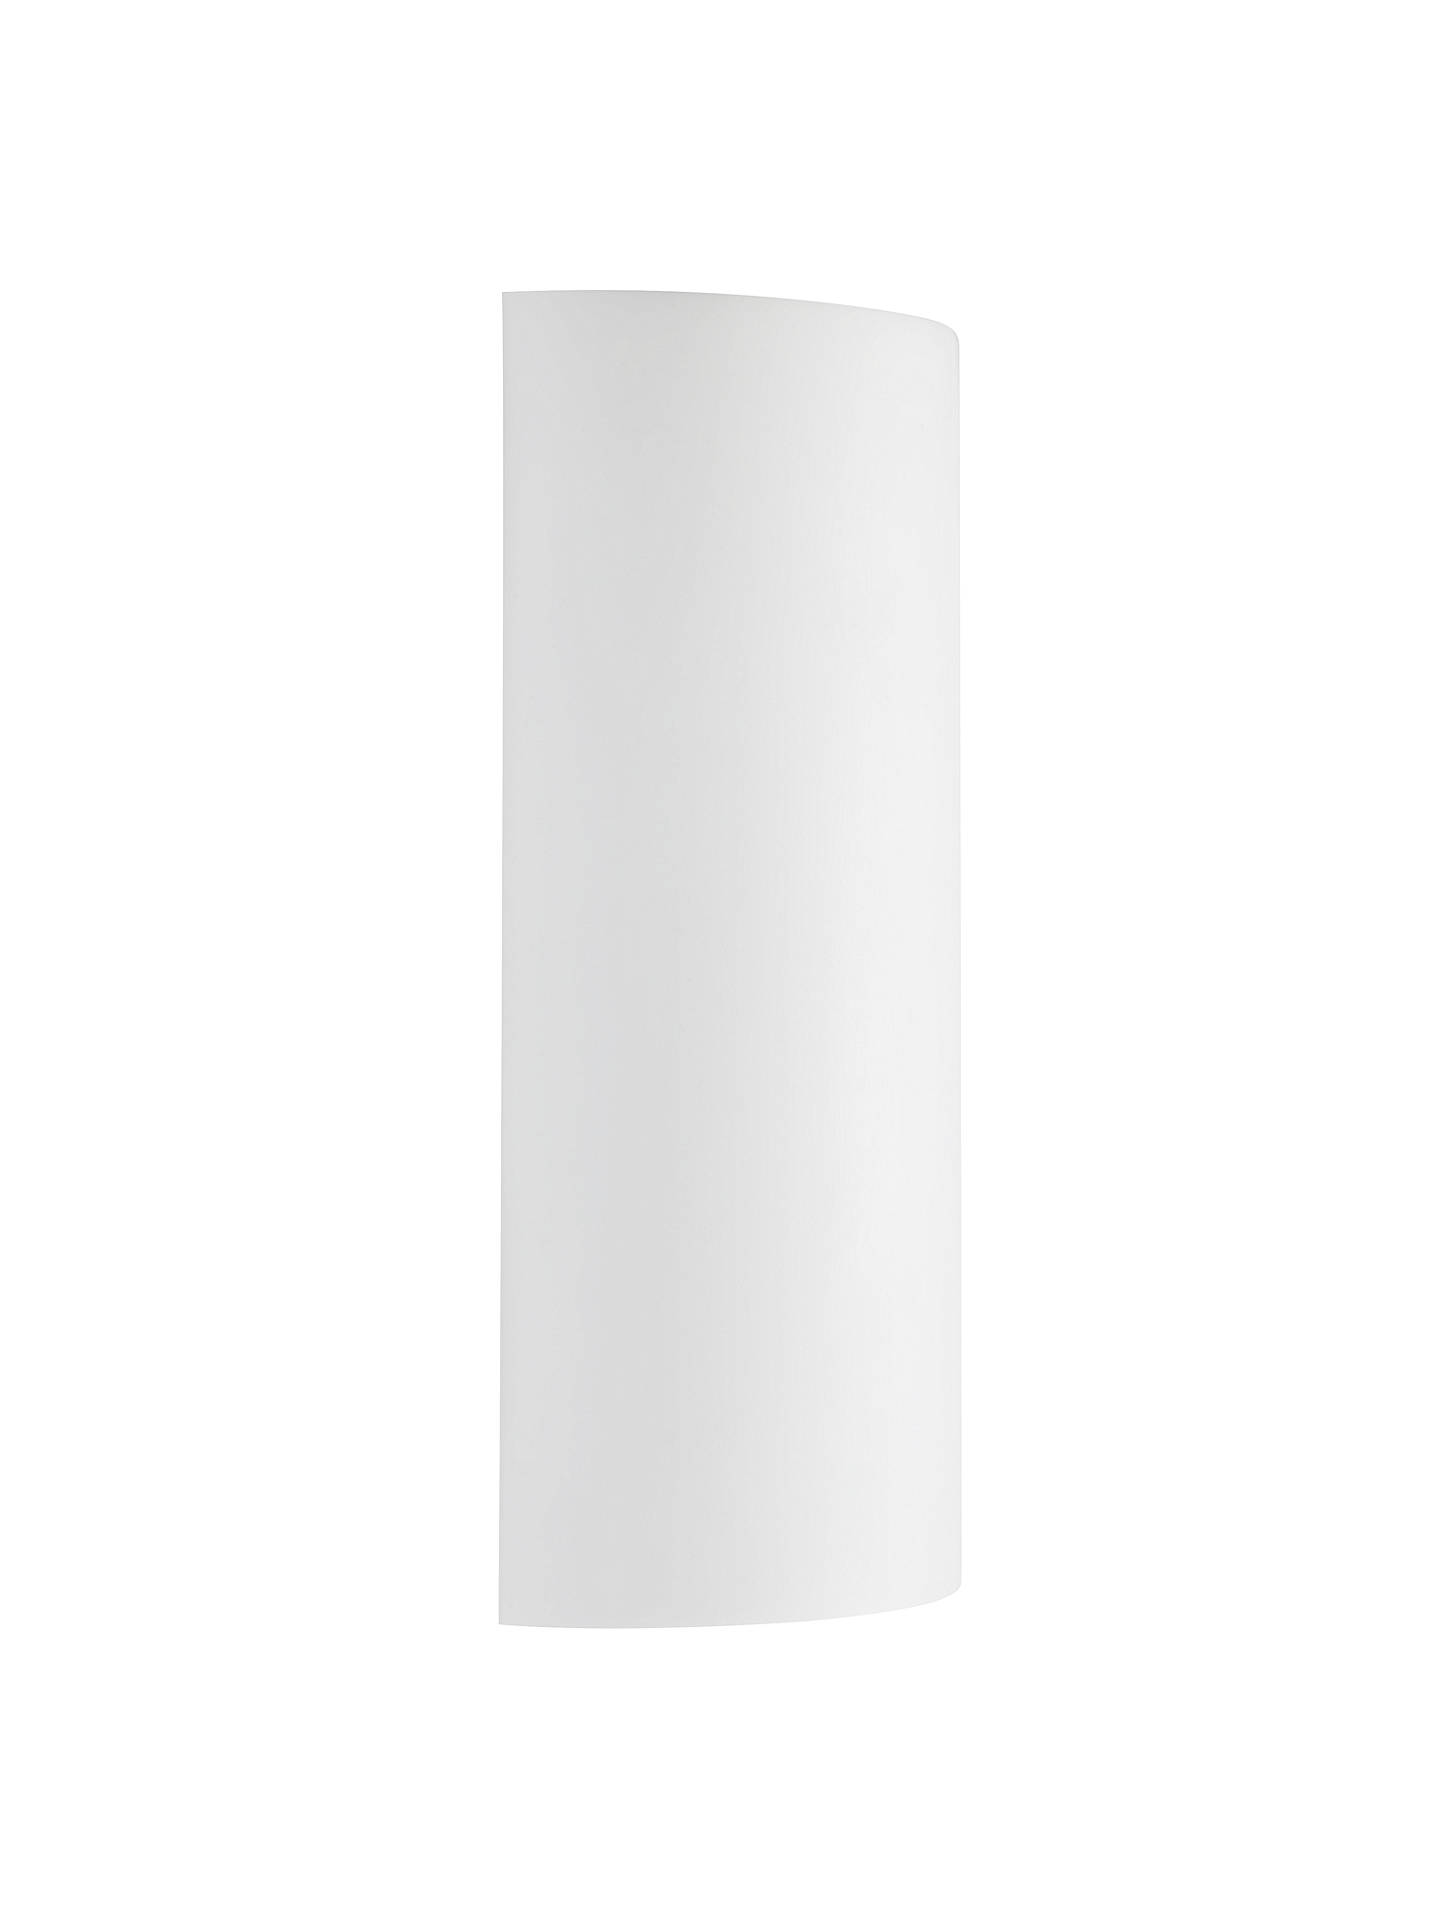 BuyAstro Serifos Wall Light, White Online at johnlewis.com